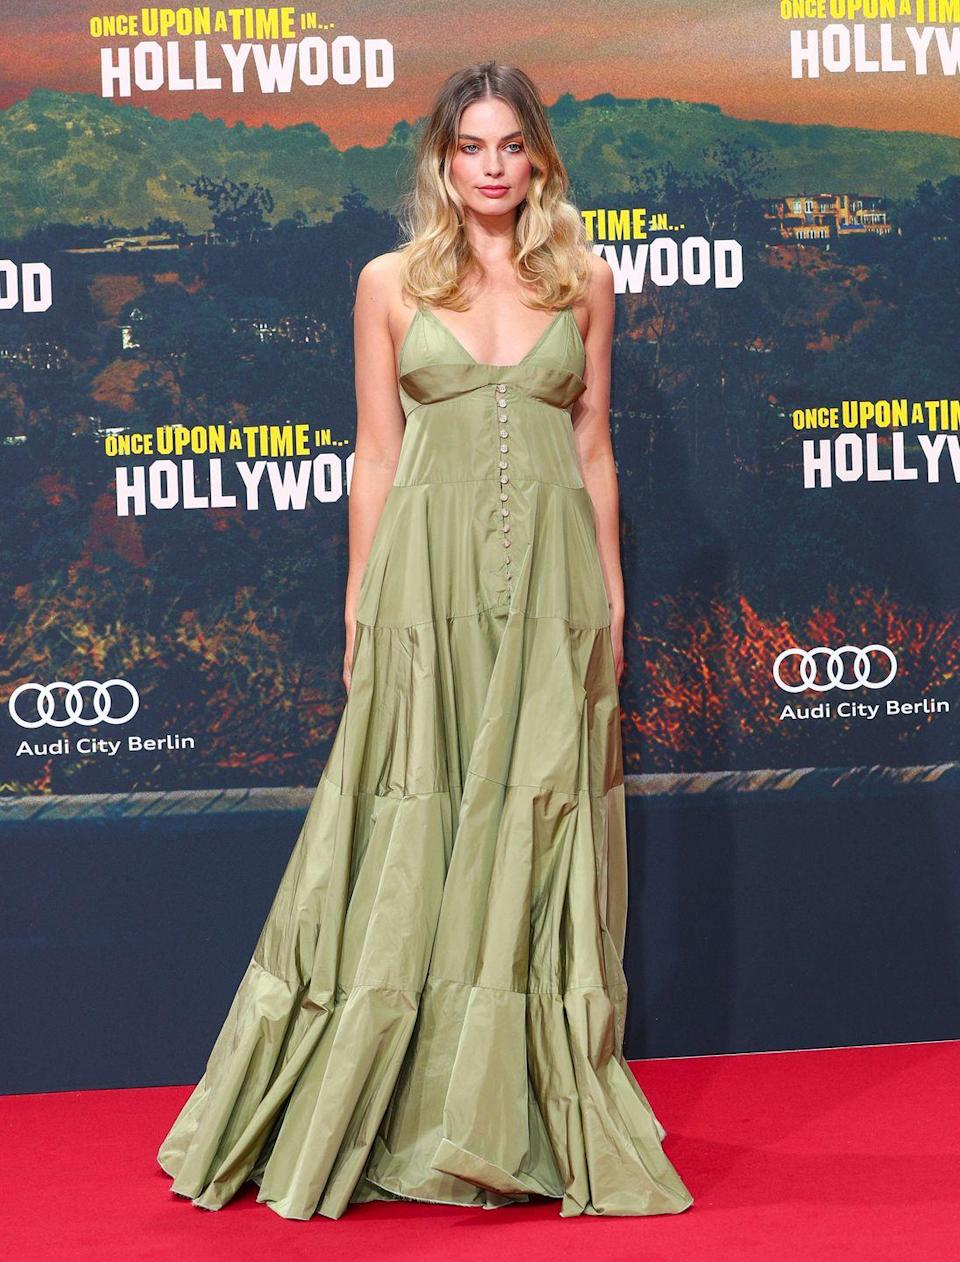 """<p>It's evident (we mean, see below) that Margot Robbie has been slaying the Once Upon A Time In Hollywood publicity tour when it comes to her outfit choices. Her most recent gown was a green tiered strap dress by Jacquemus, which was fresh off the runway having <a href=""""https://www.elle.com/uk/fashion/a28178761/jacquemus-ss20-show/"""" rel=""""nofollow noopener"""" target=""""_blank"""" data-ylk=""""slk:featured in the brand's internet-breaking anniversary show held in a lavender field."""" class=""""link rapid-noclick-resp"""">featured in the brand's internet-breaking anniversary show held in a lavender field.</a></p>"""